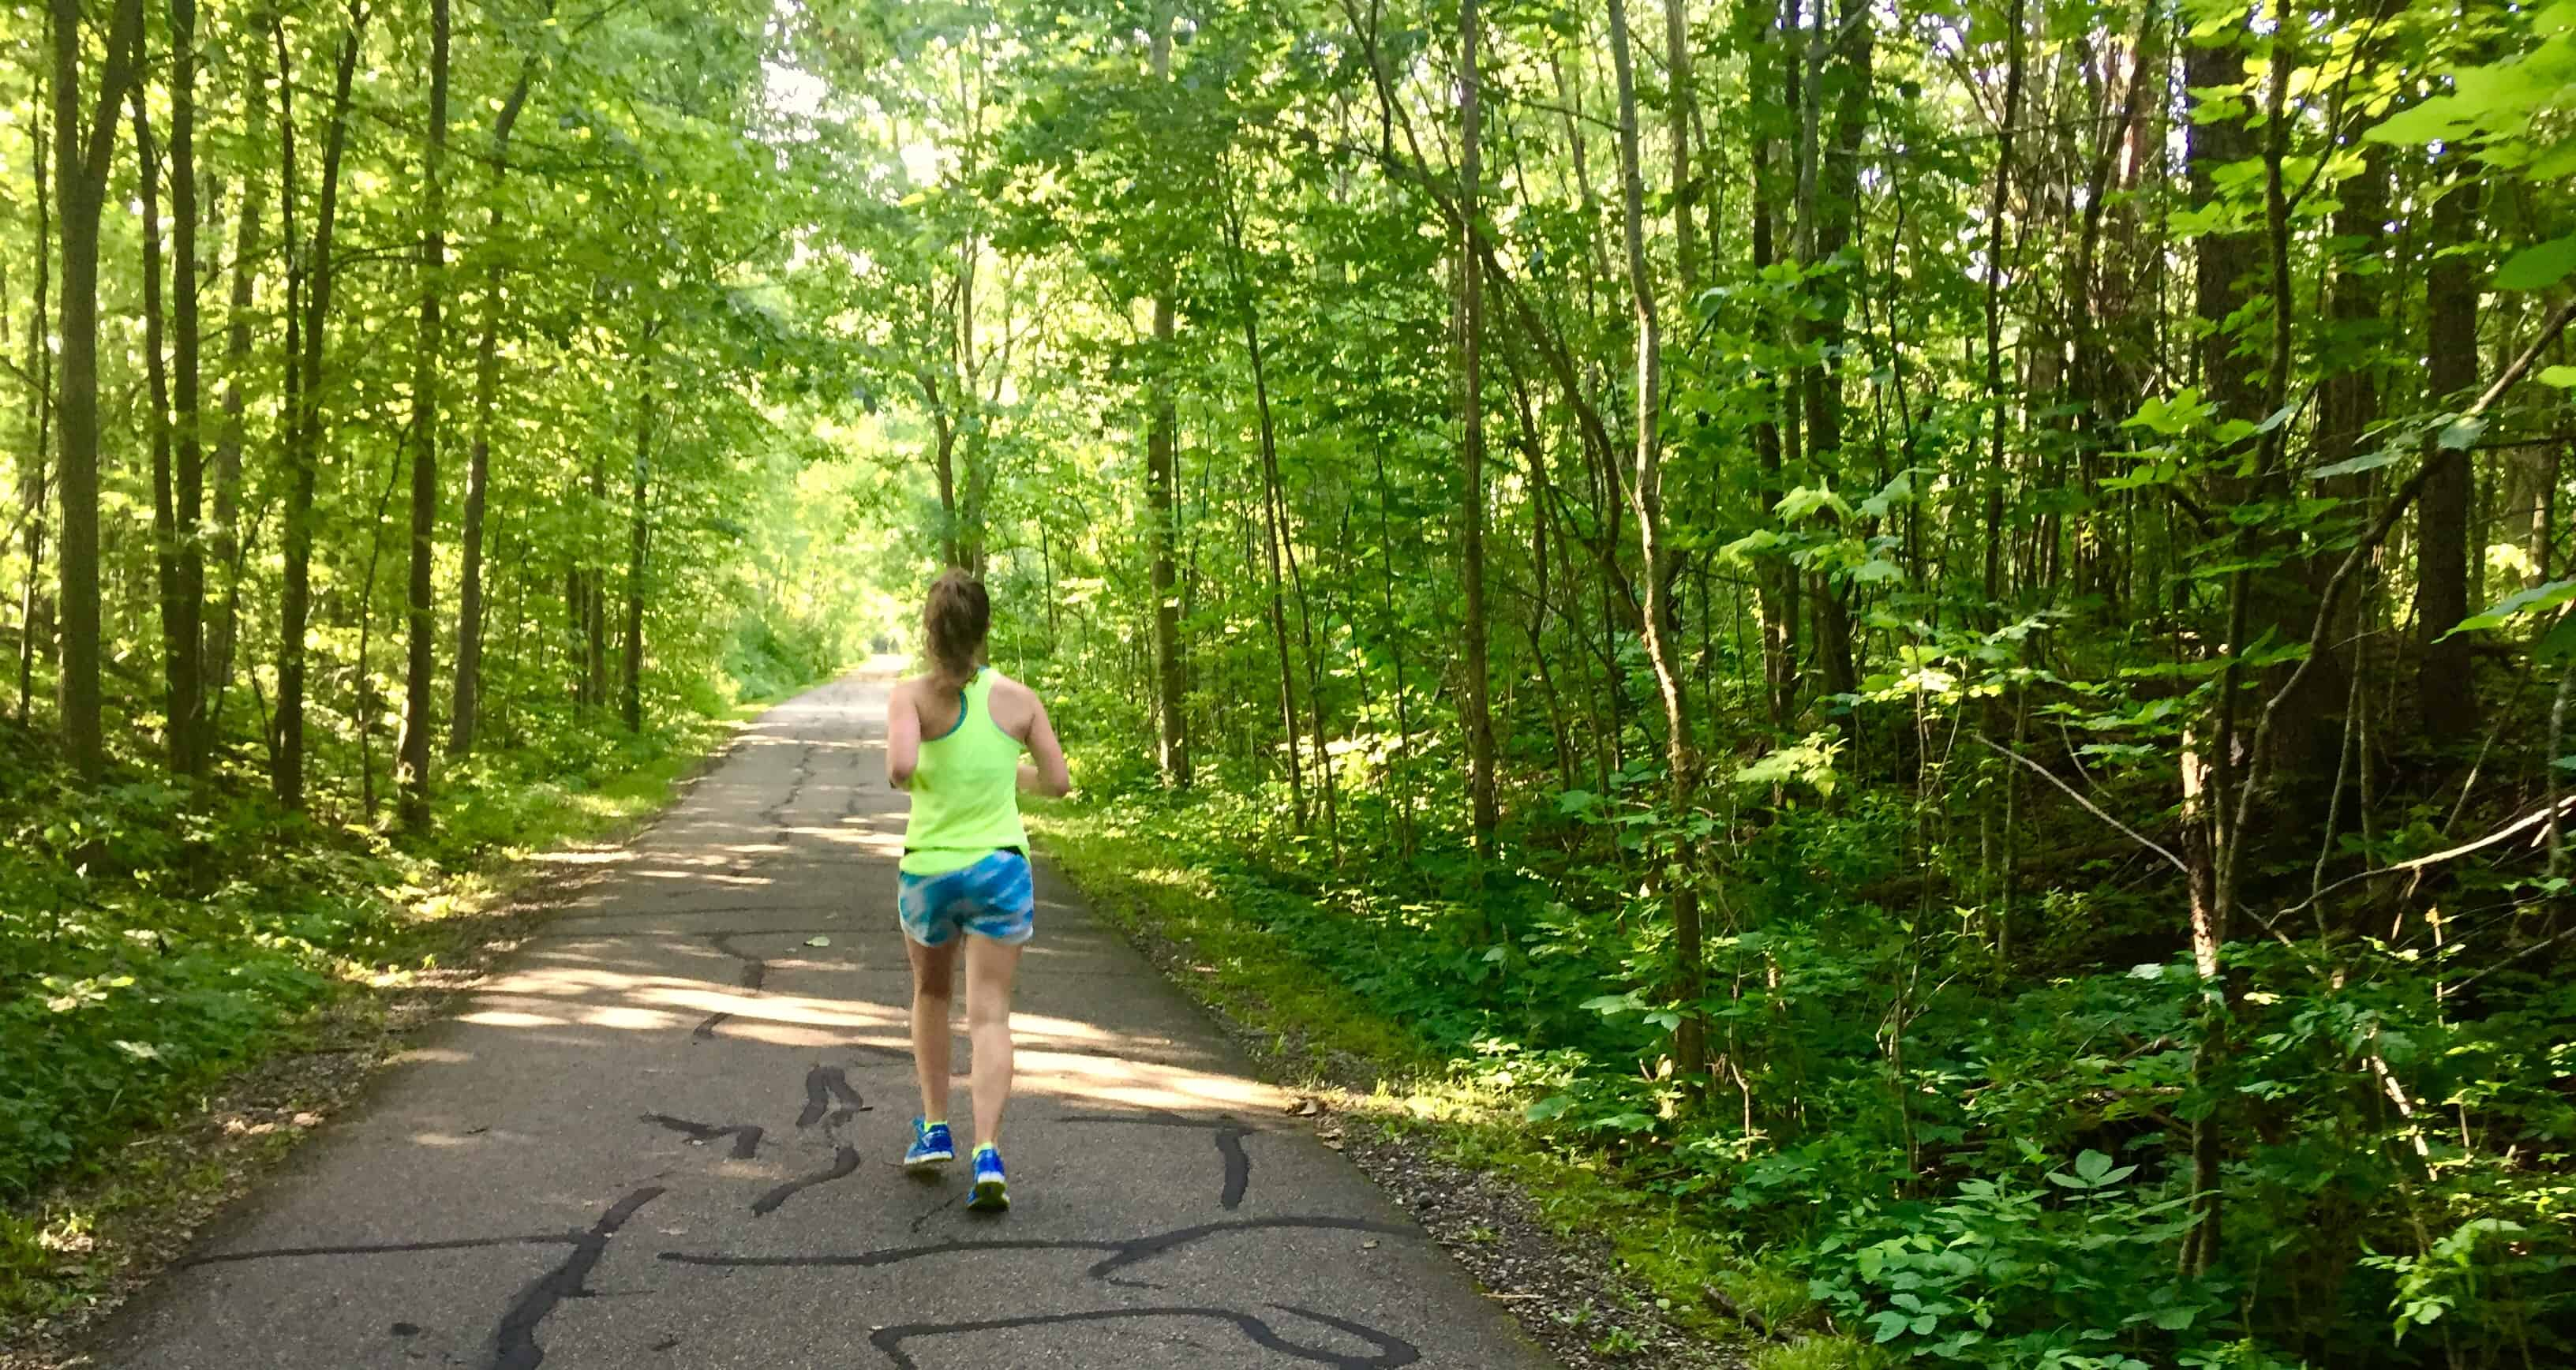 These long distance running tips will help any runner during marathon training or just as you're beginning to increase your mileage. Check out this article for all the secrets to successful long distance training for life!